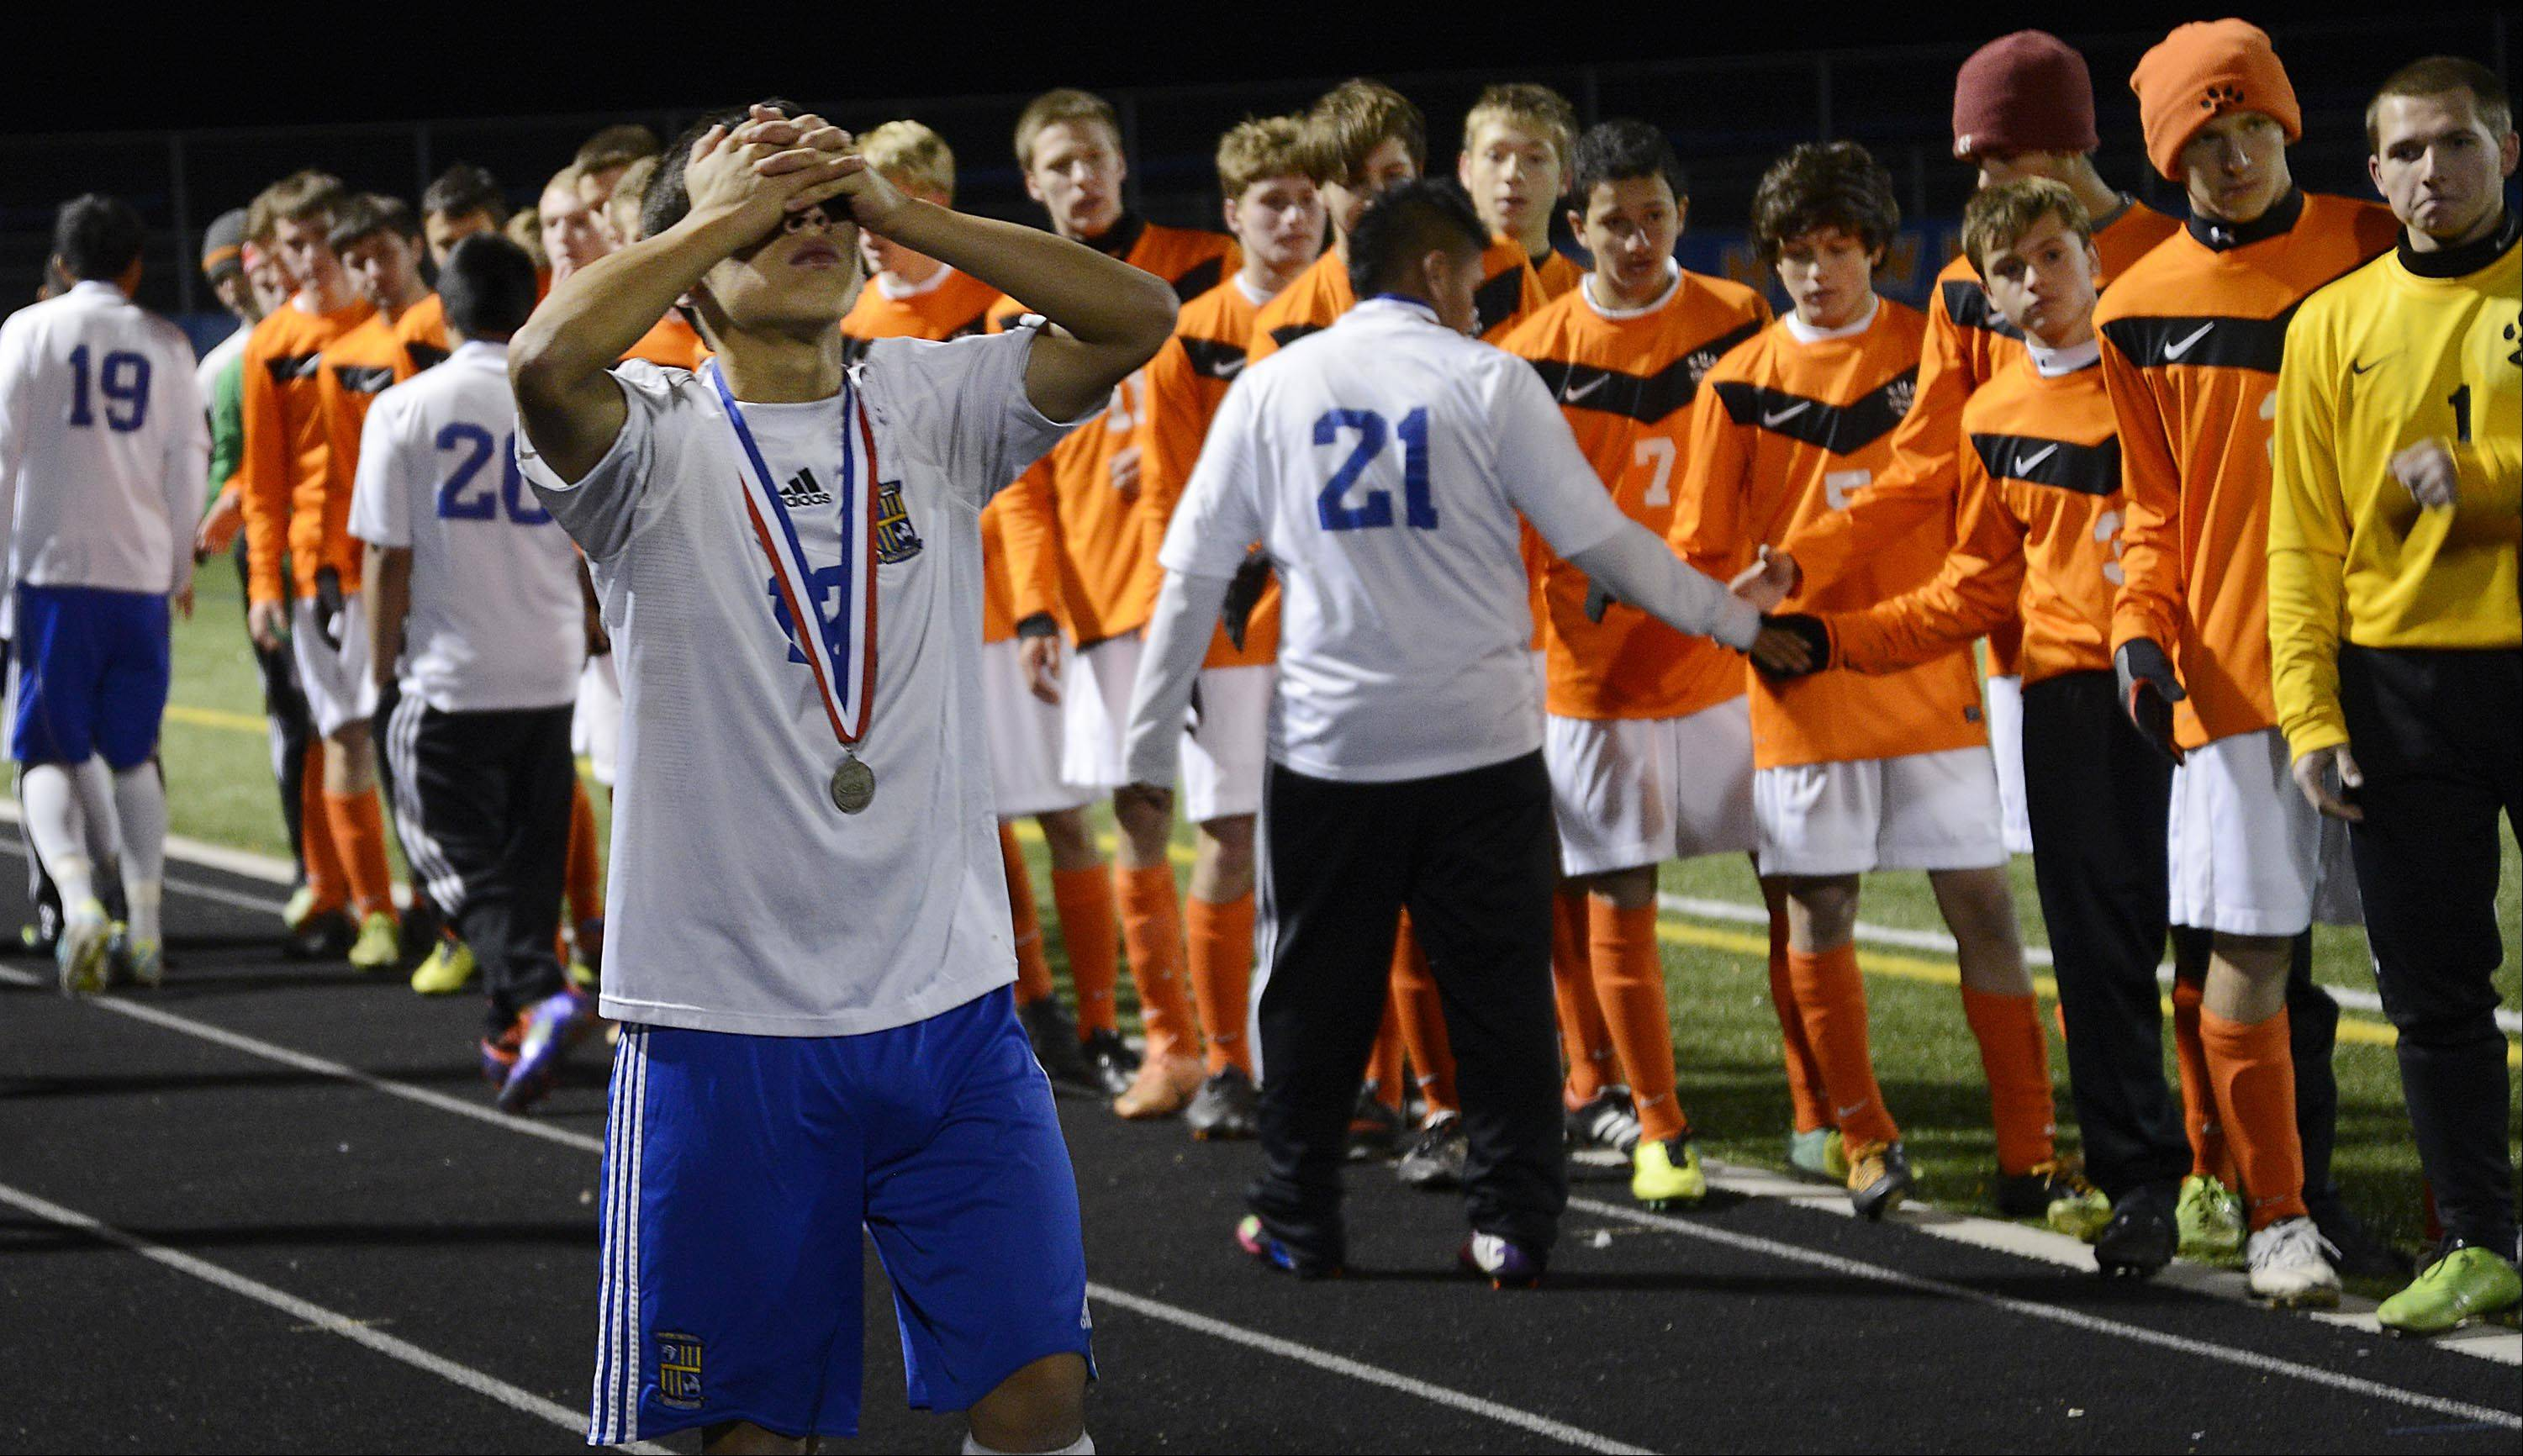 Wheeling's Aldredo Rocha covers his eyes after shaking hands with Edwardsville following the Wildcats' 2-1 loss in the Class 3A boys soccer state championship game Saturday night in Hoffman Estates.